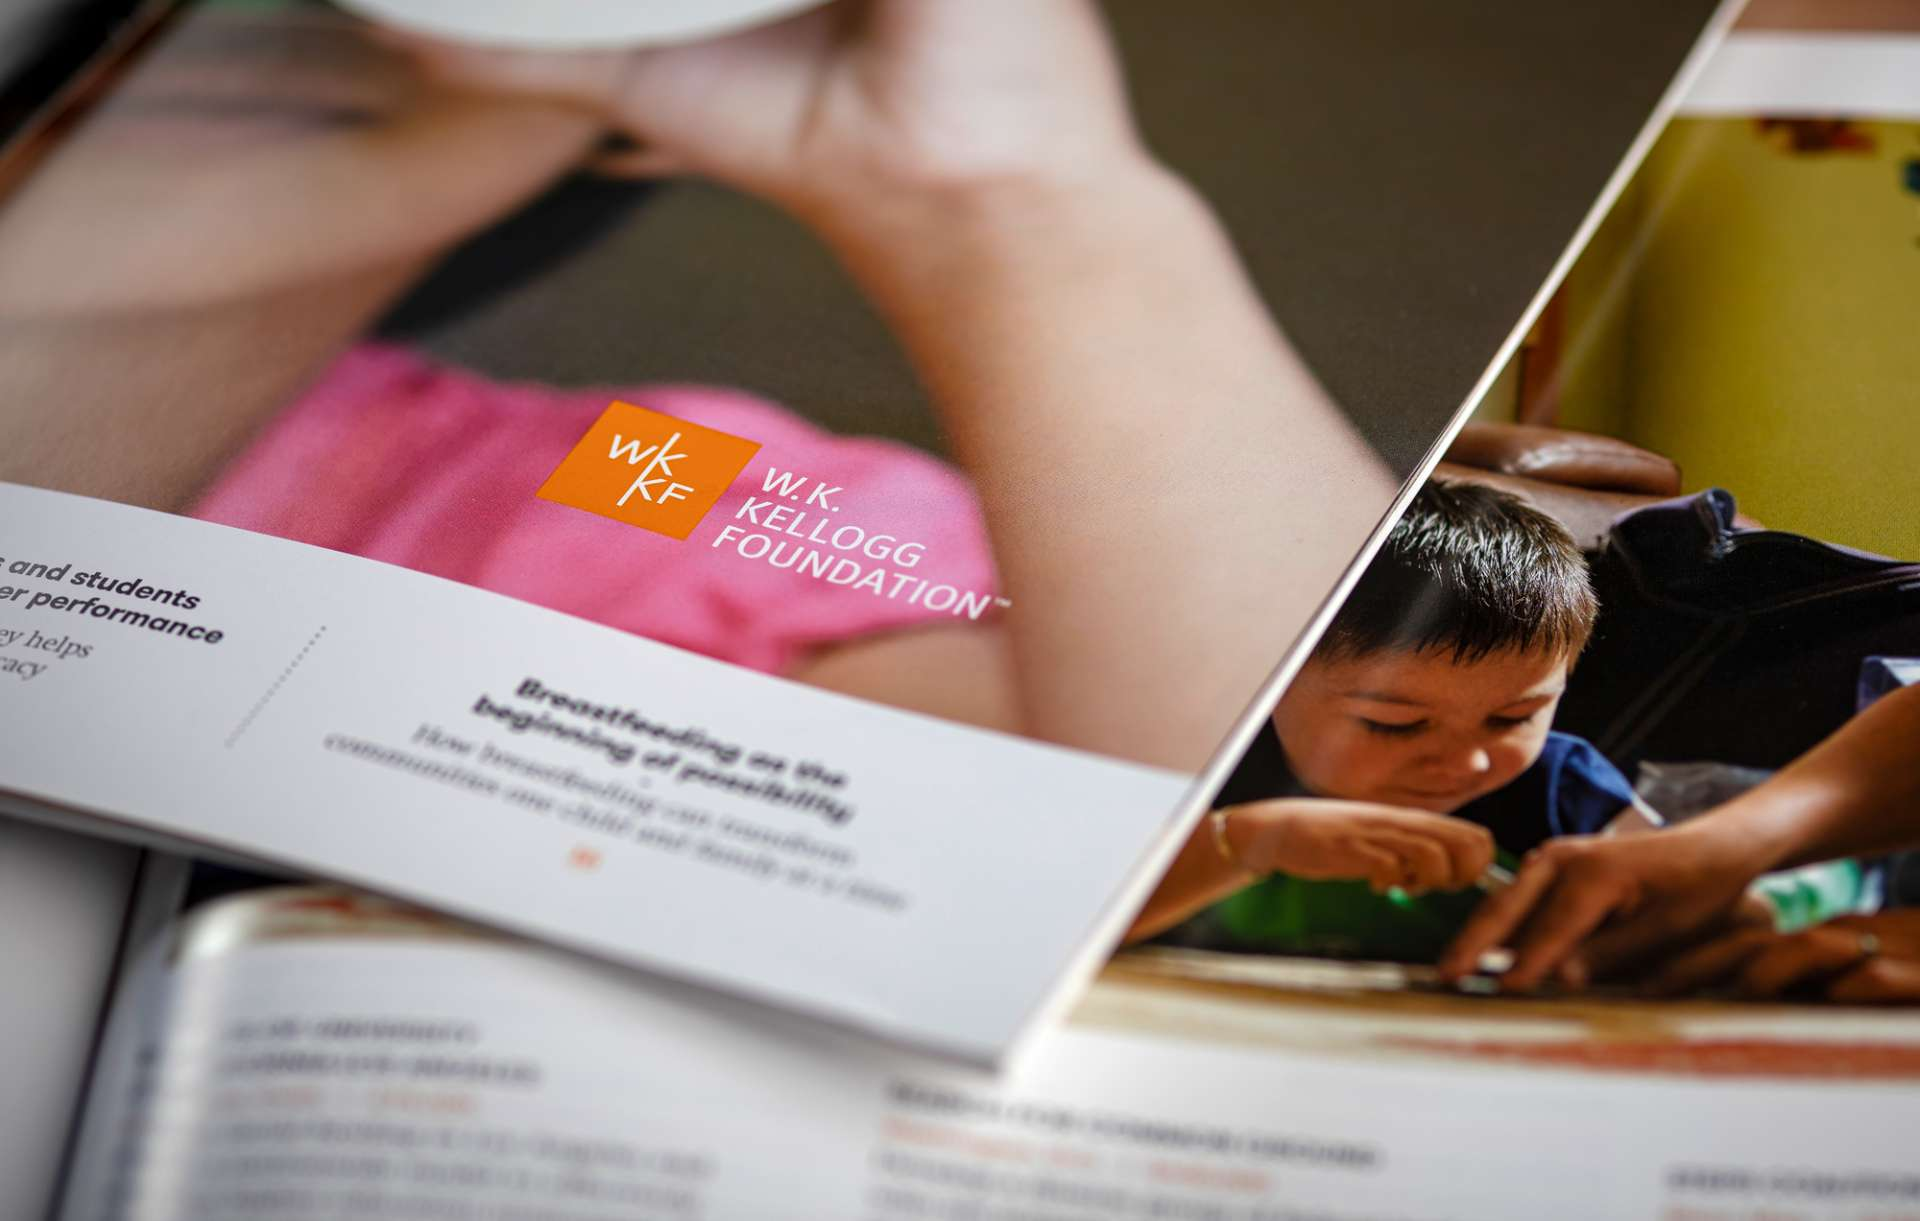 Close up detail of WK Kellogg Foundation annual report